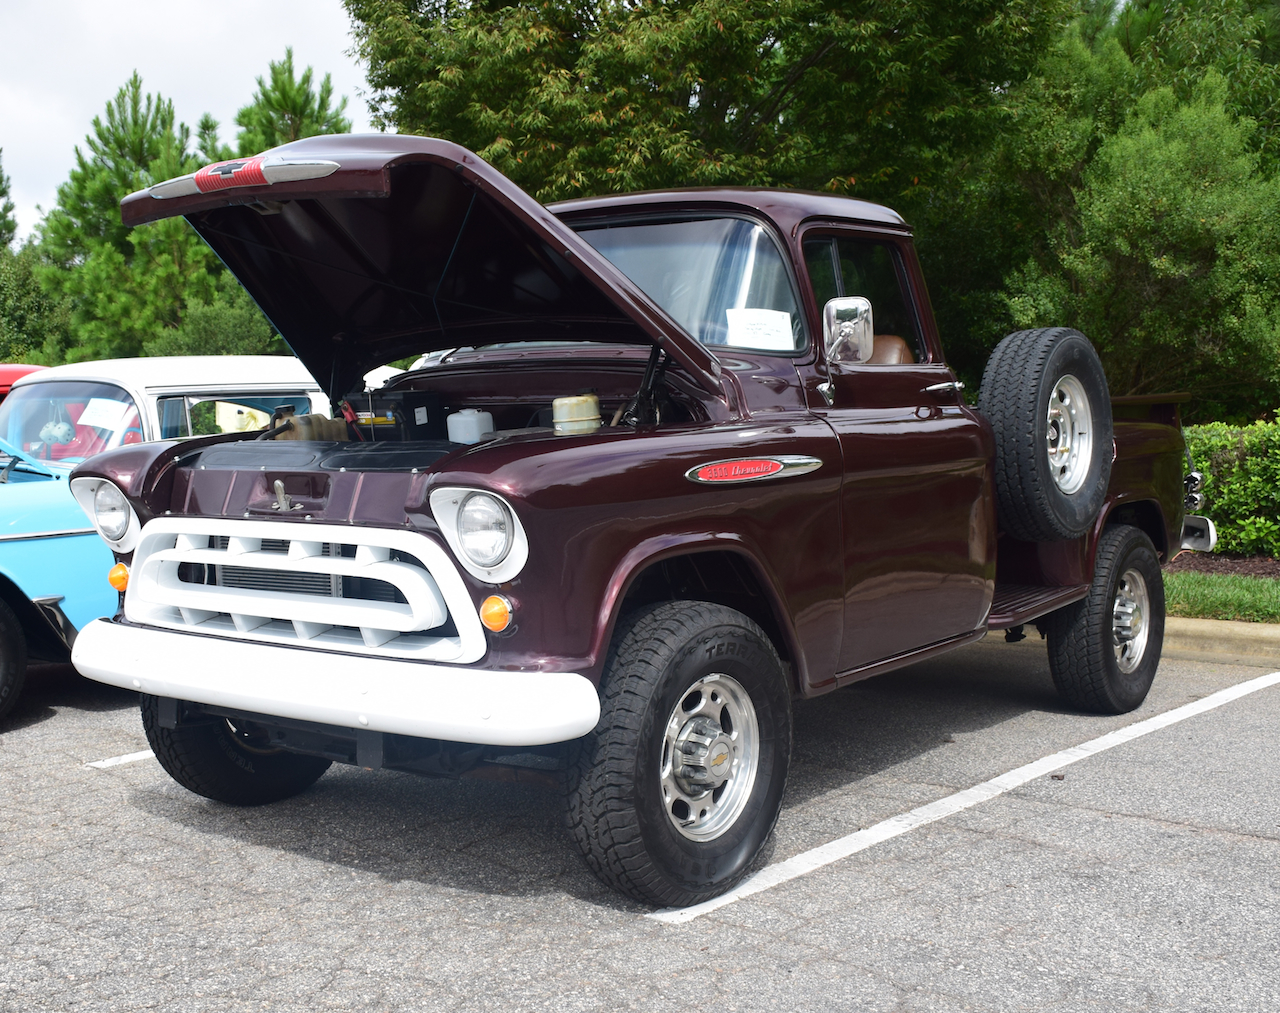 1957 Chevrolet 3600 pickup truck. Capital City Cruisers